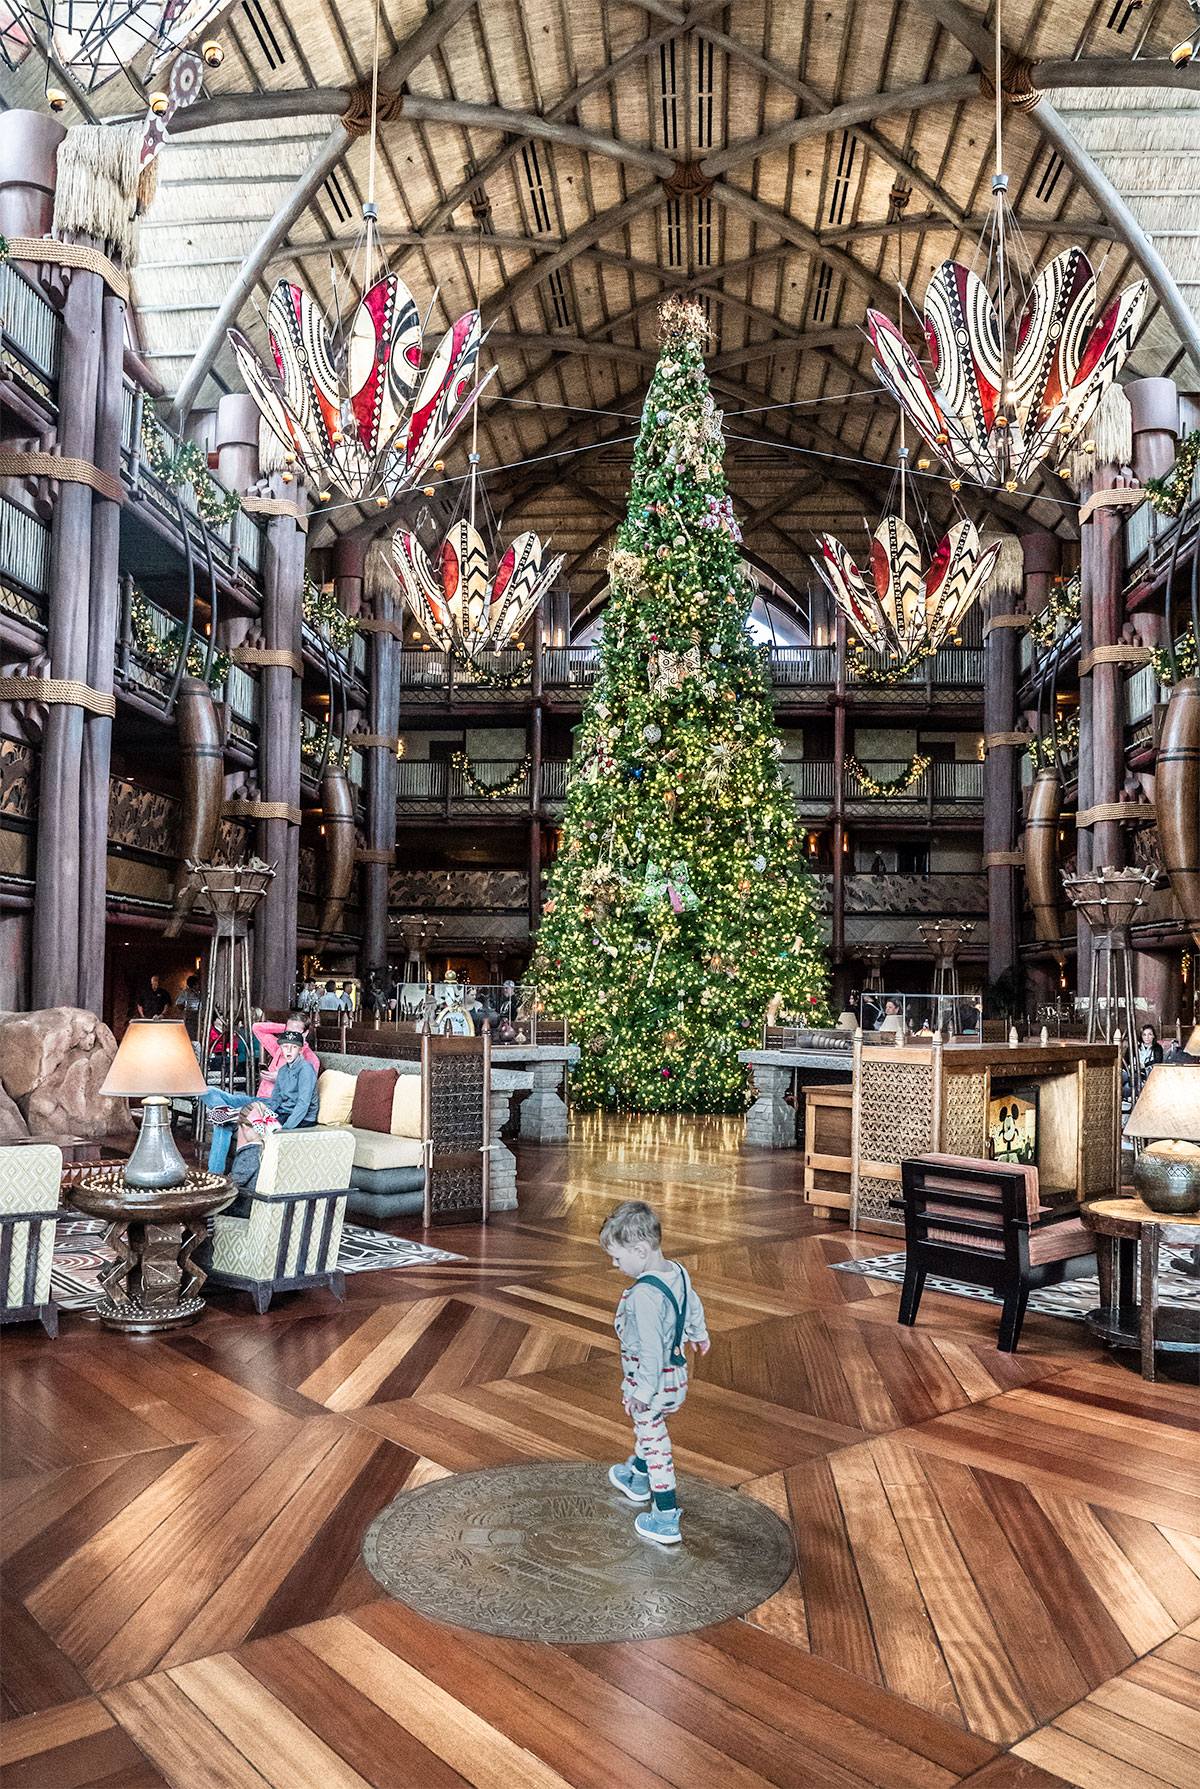 Giant-Christmas-Tree-Lobby-Of-Animald-Kingdom-Lodge-christmas